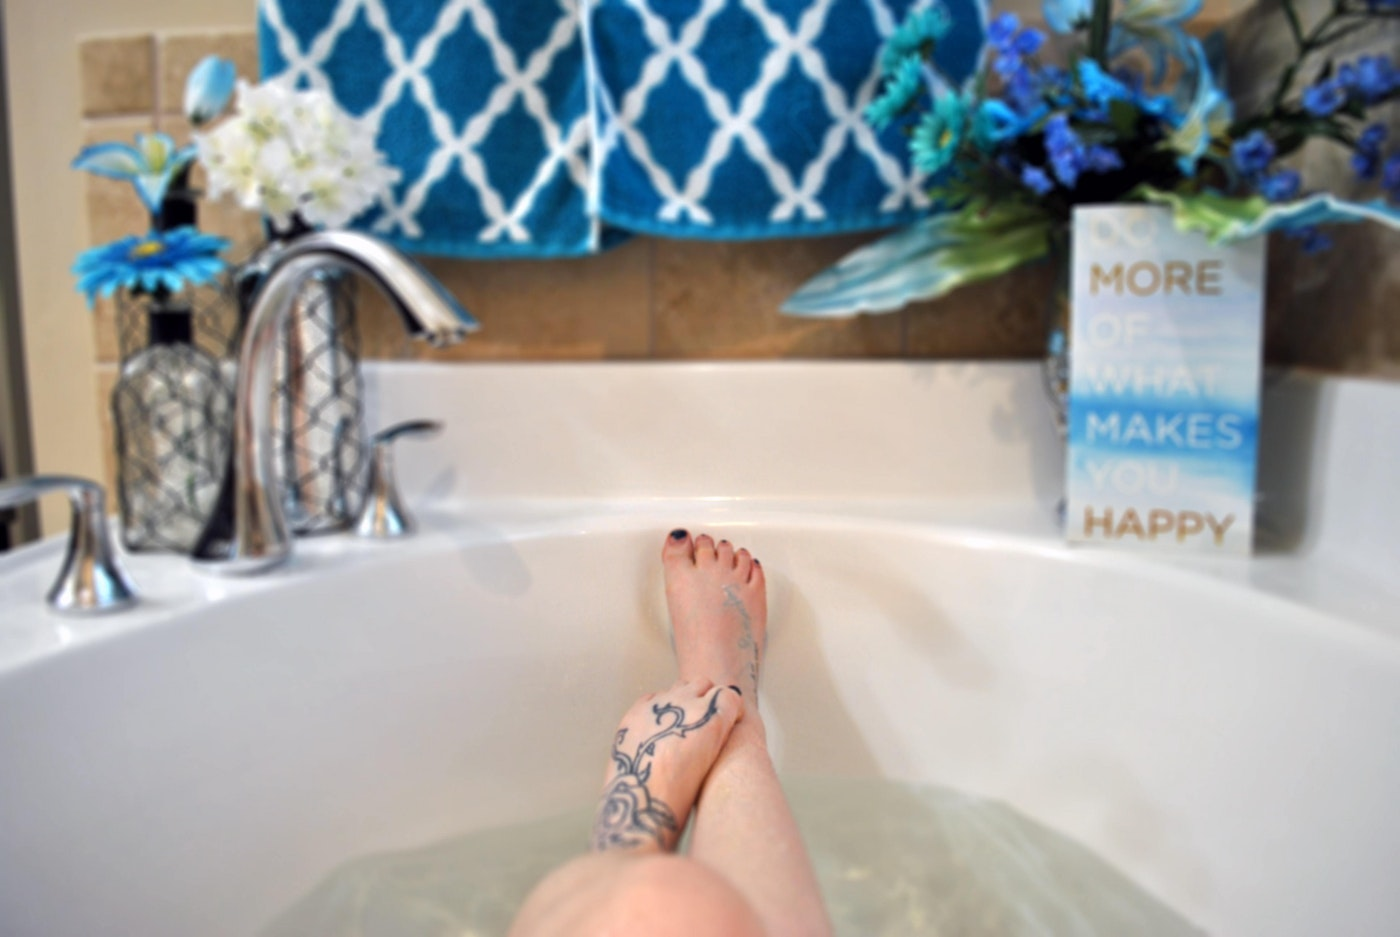 Hot Bath Alcohol-Free Inspiration for Dry July 2020 - Day 3 Sober Treats